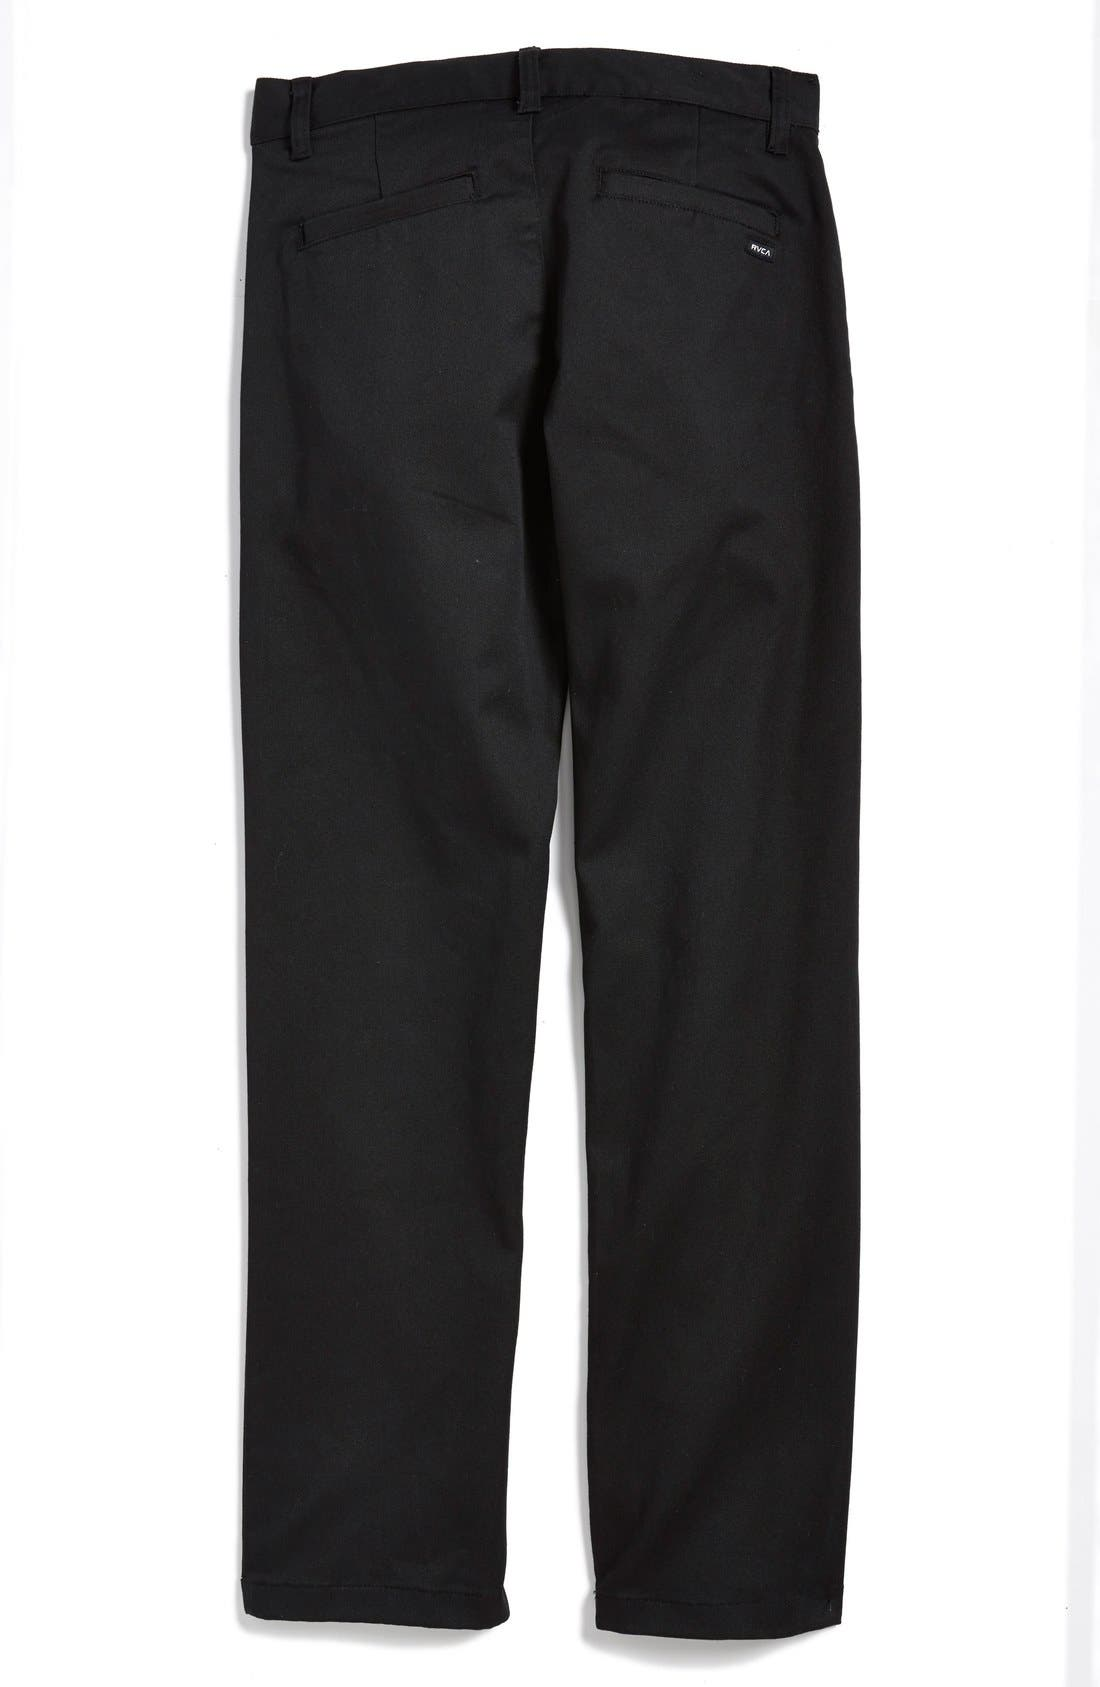 'Weekday' Stretch Chinos,                             Alternate thumbnail 16, color,